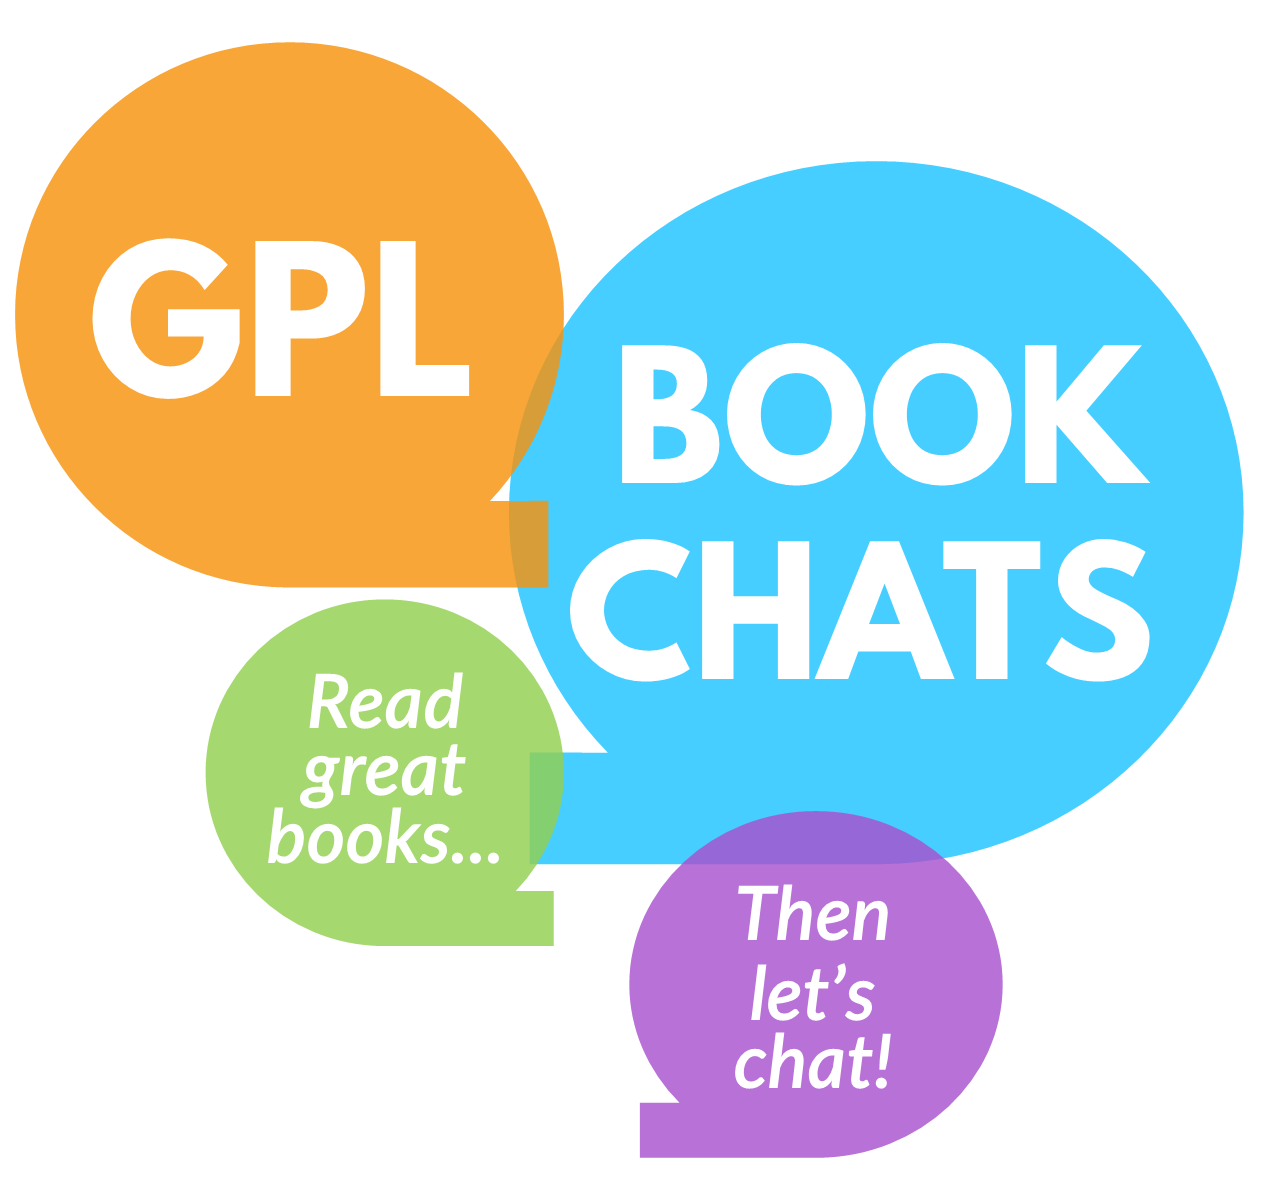 GPL Book Chats: Read great books graphic